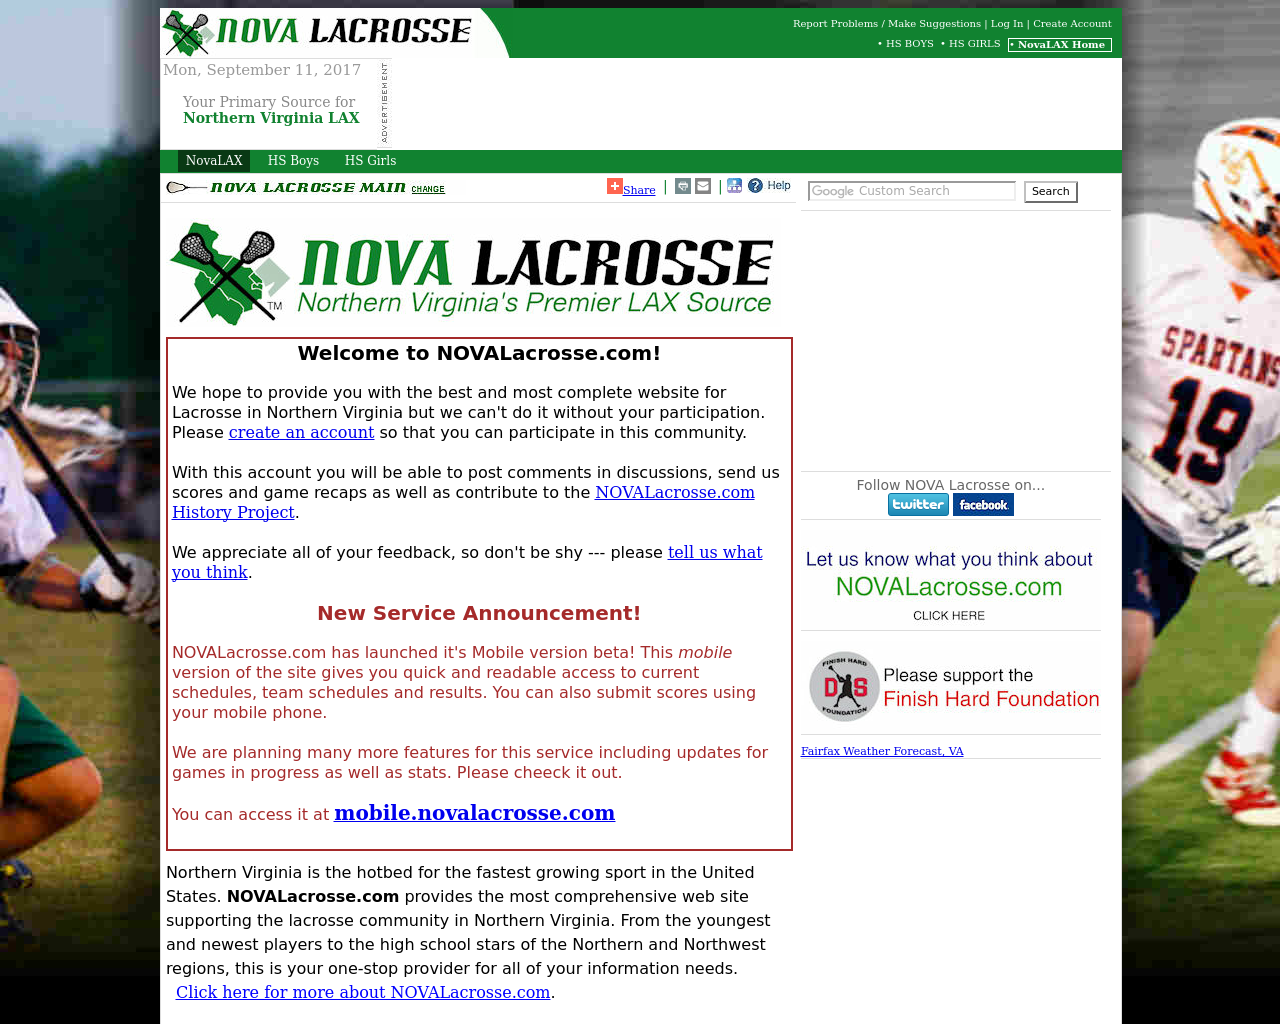 Nova-Lacrosse-Advertising-Reviews-Pricing